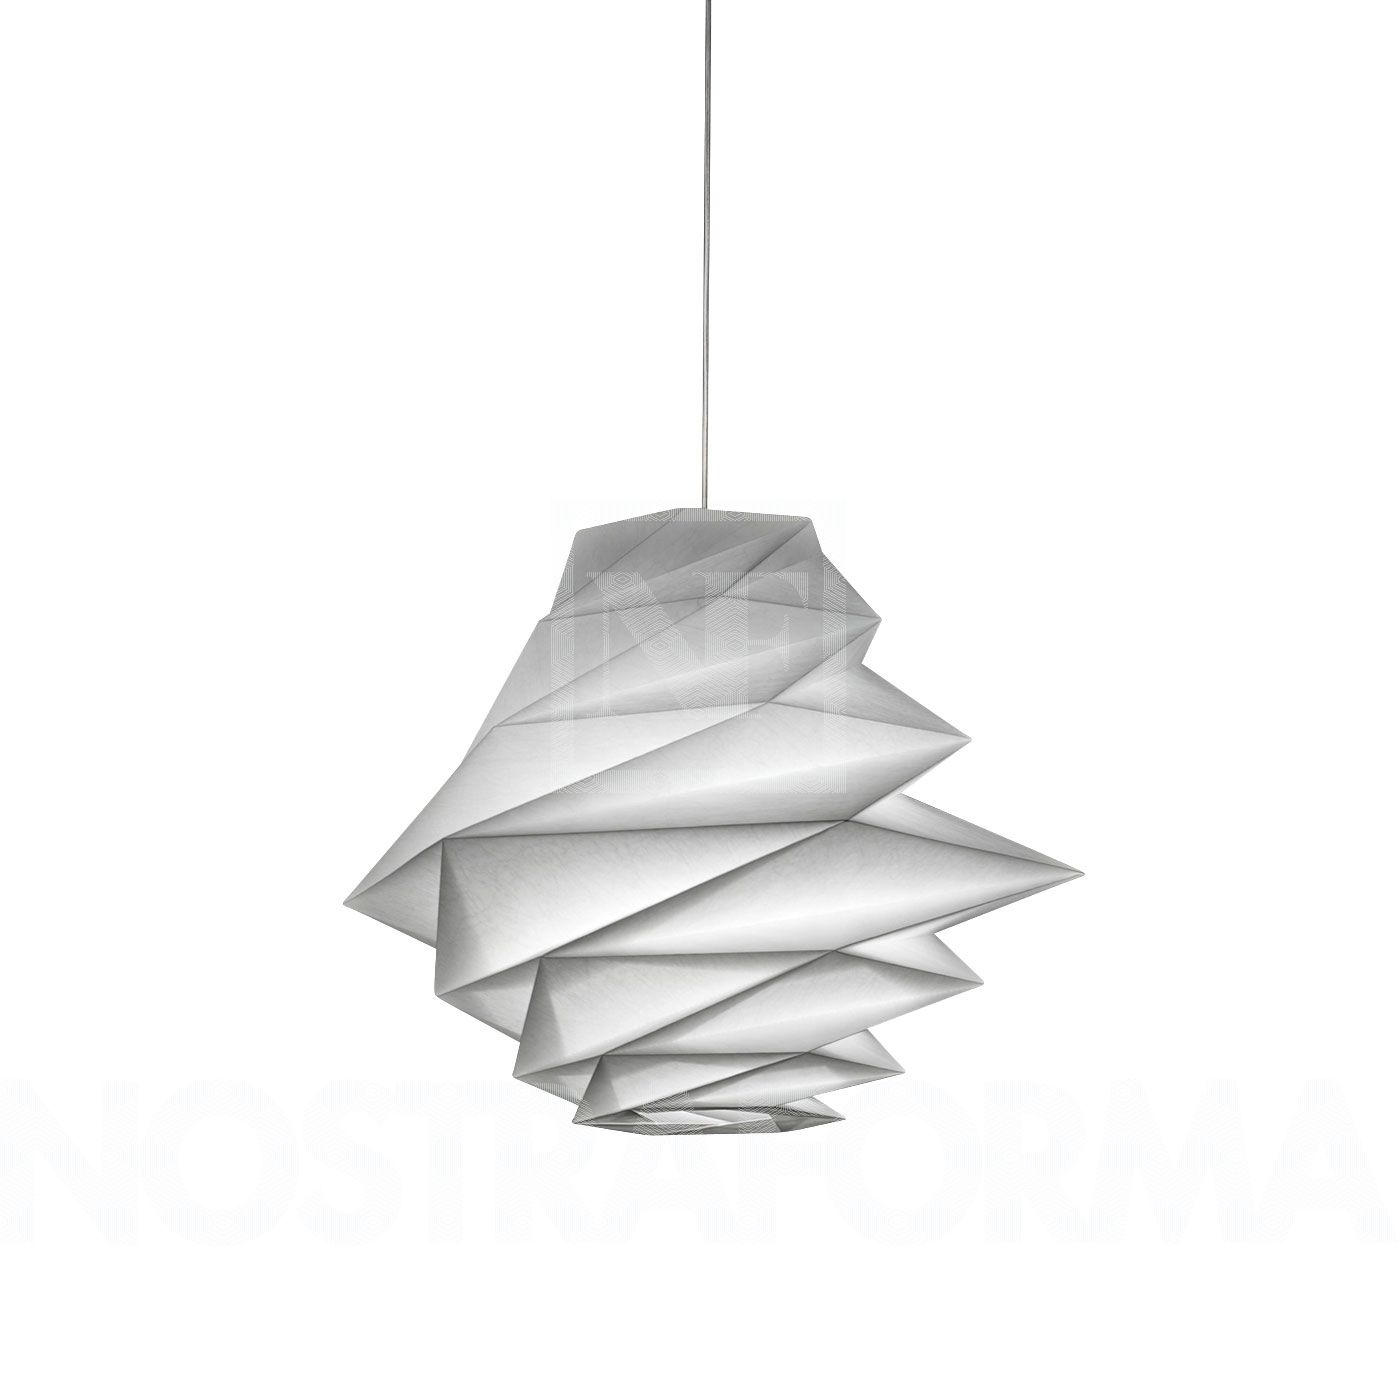 IN-EI Fukurou suspension de la marque Artemide